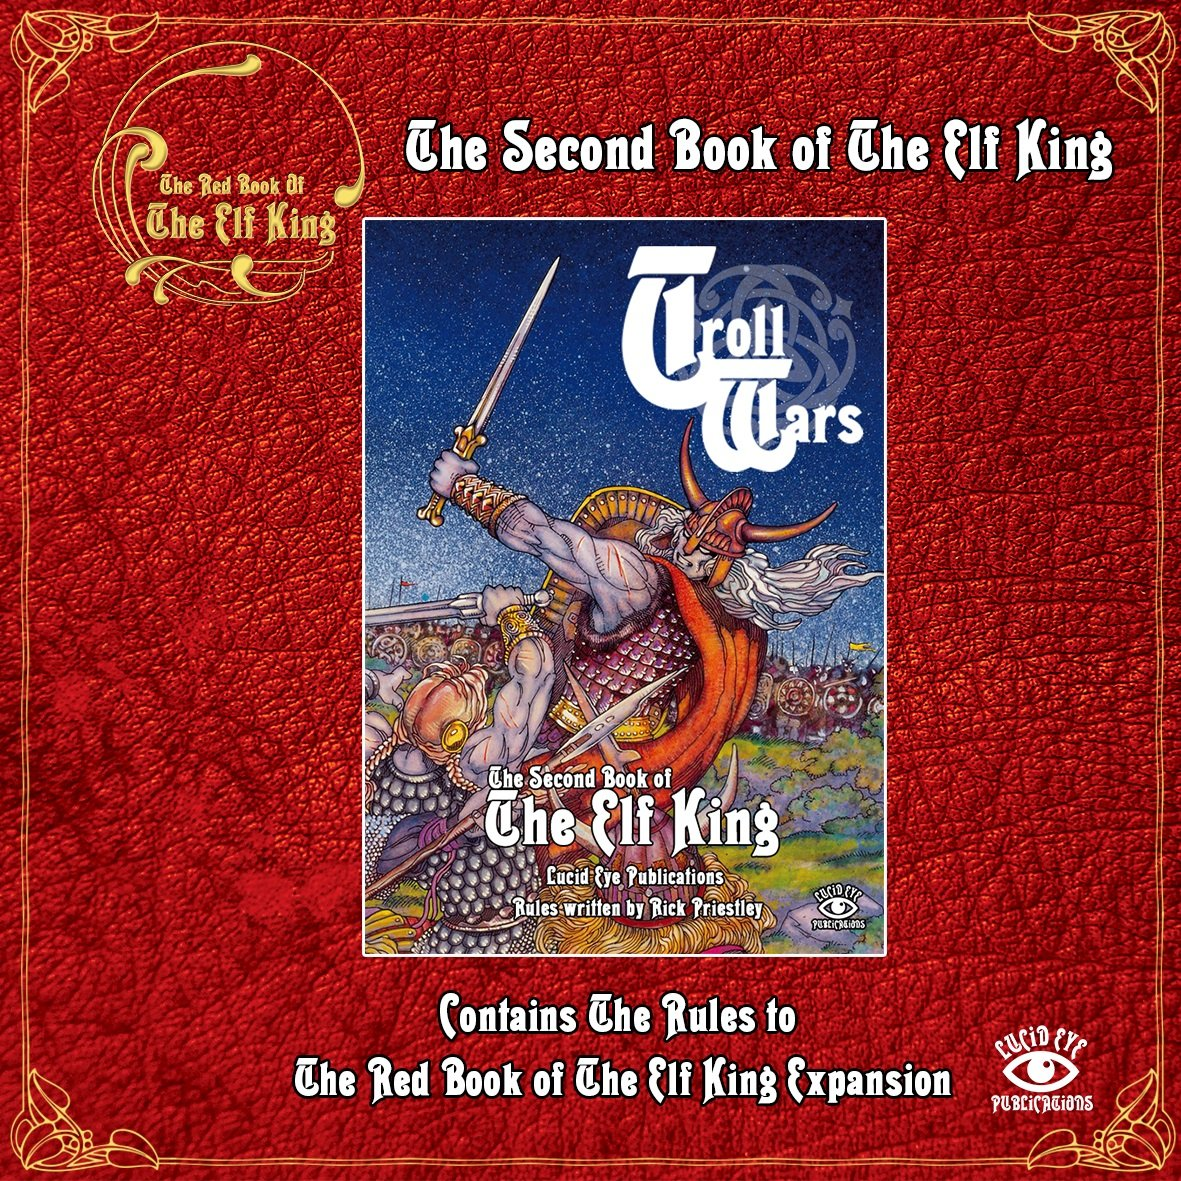 The Second Book of The Elf King